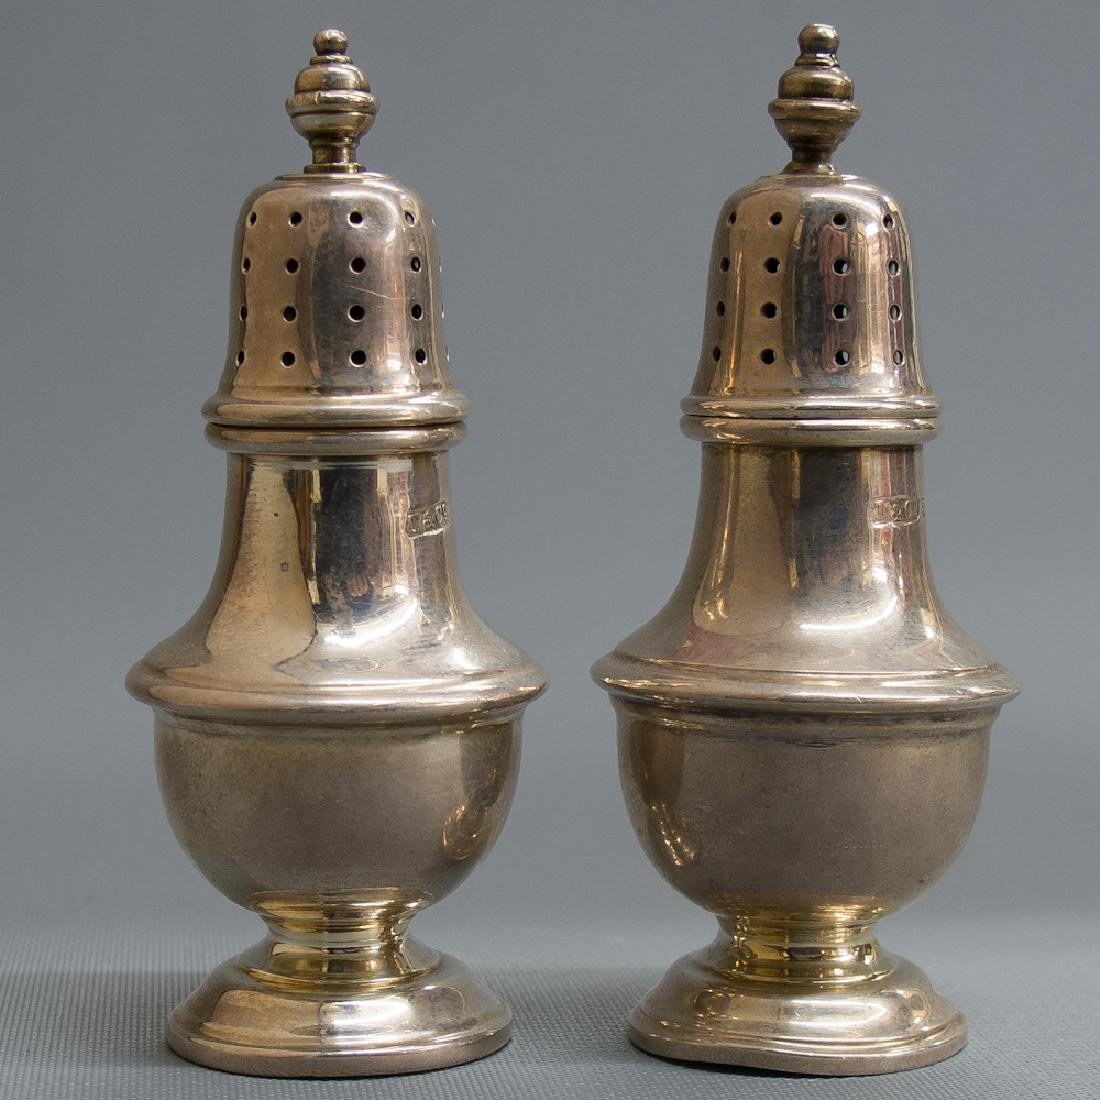 Tiffany & Co Silver Salt & Pepper Pots